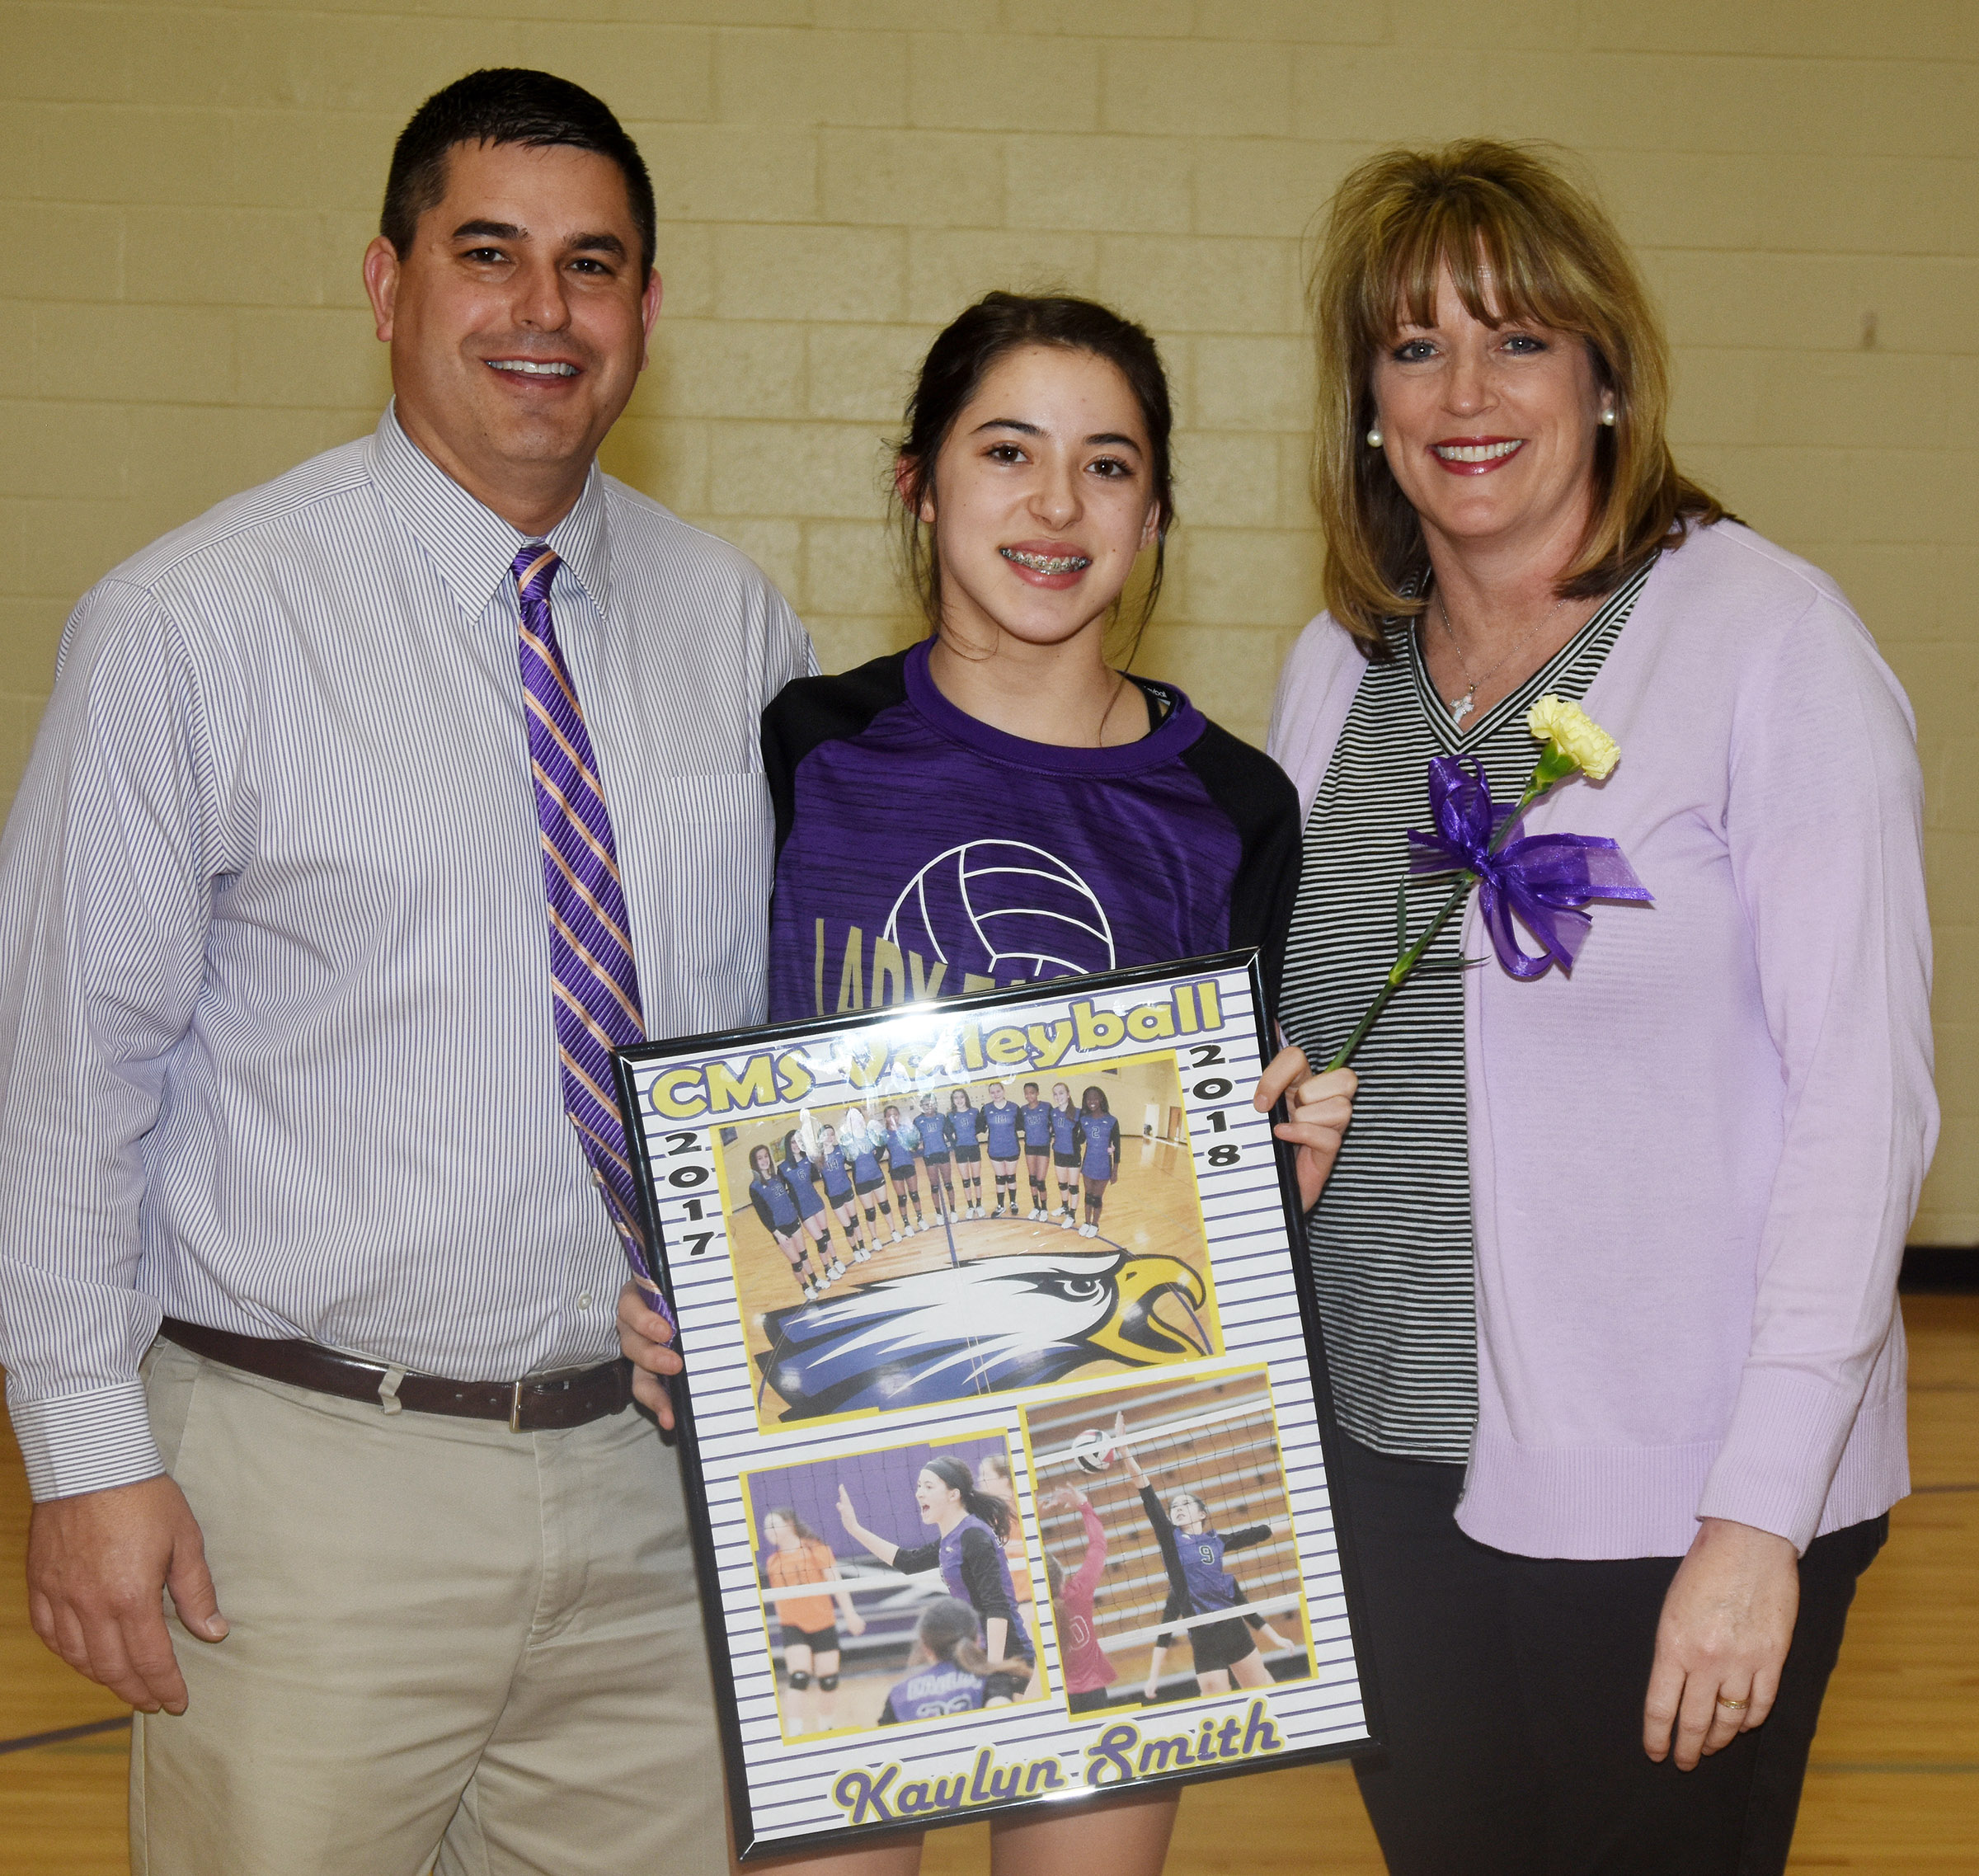 CMS eighth-grader Kaylyn Smith is honored for her dedication and hard work this season. She is pictured with her parents, Kirby and Andrea.